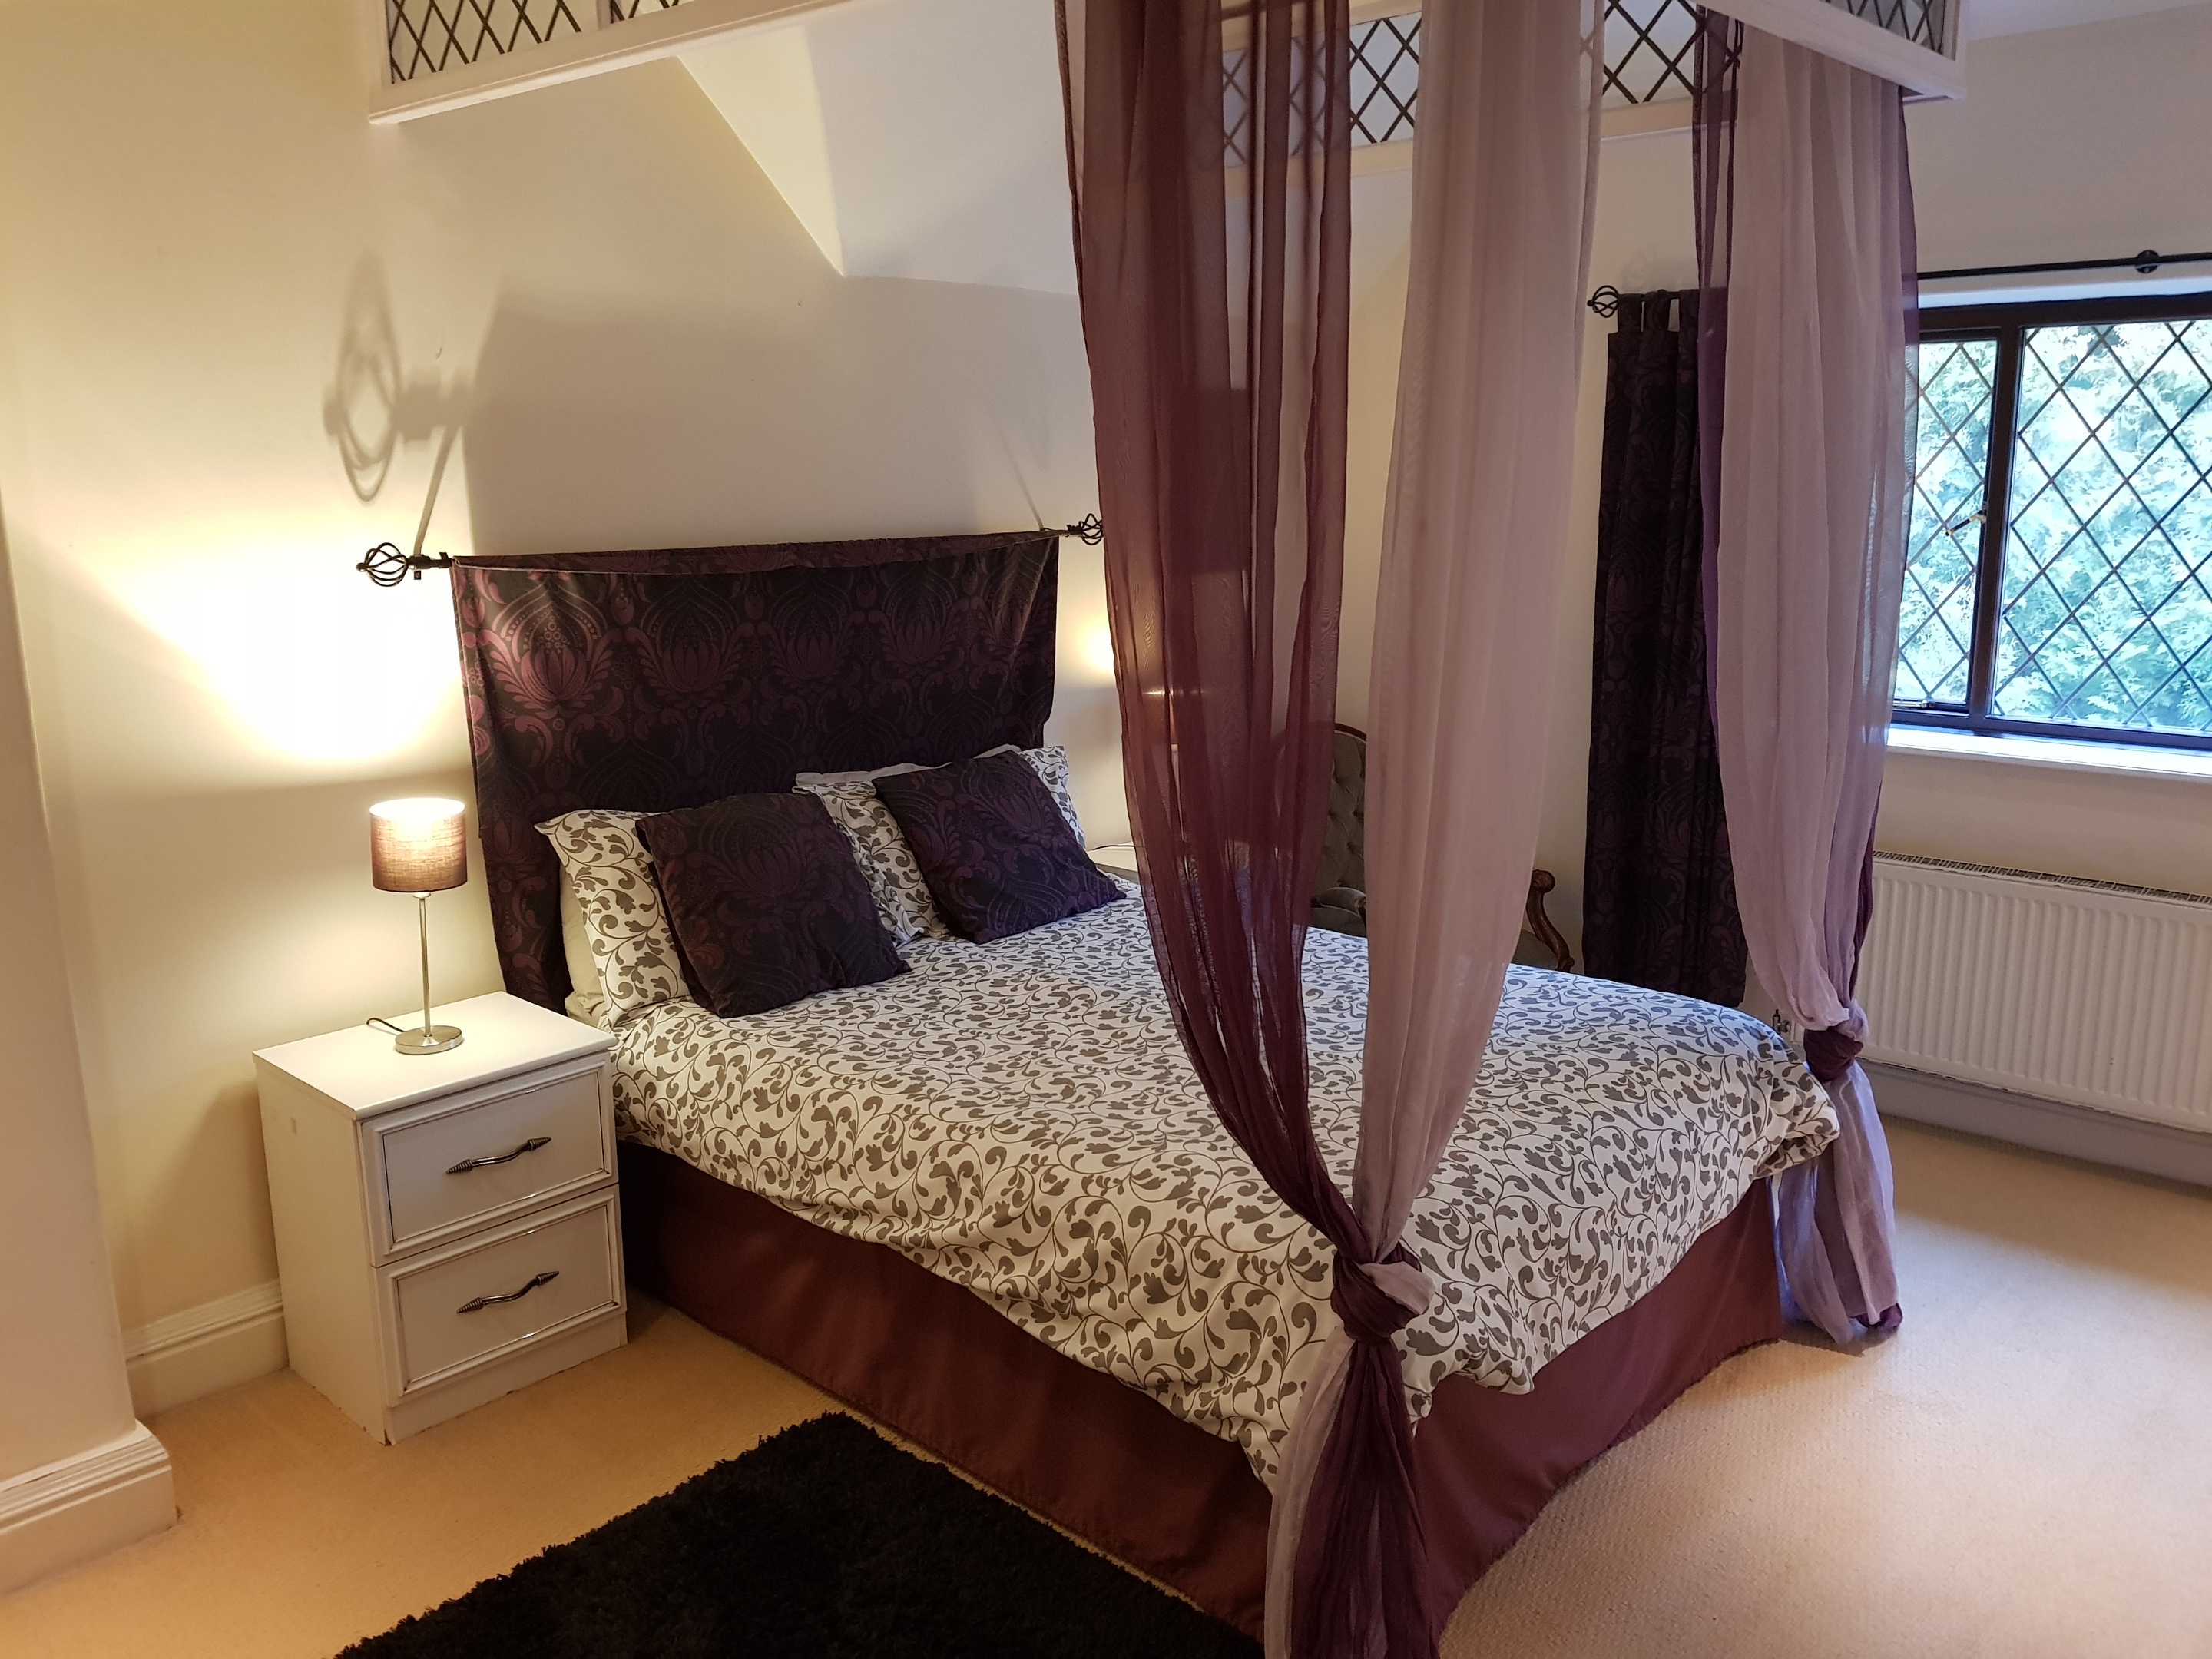 Master bedroom Deryshire selfcatering large group